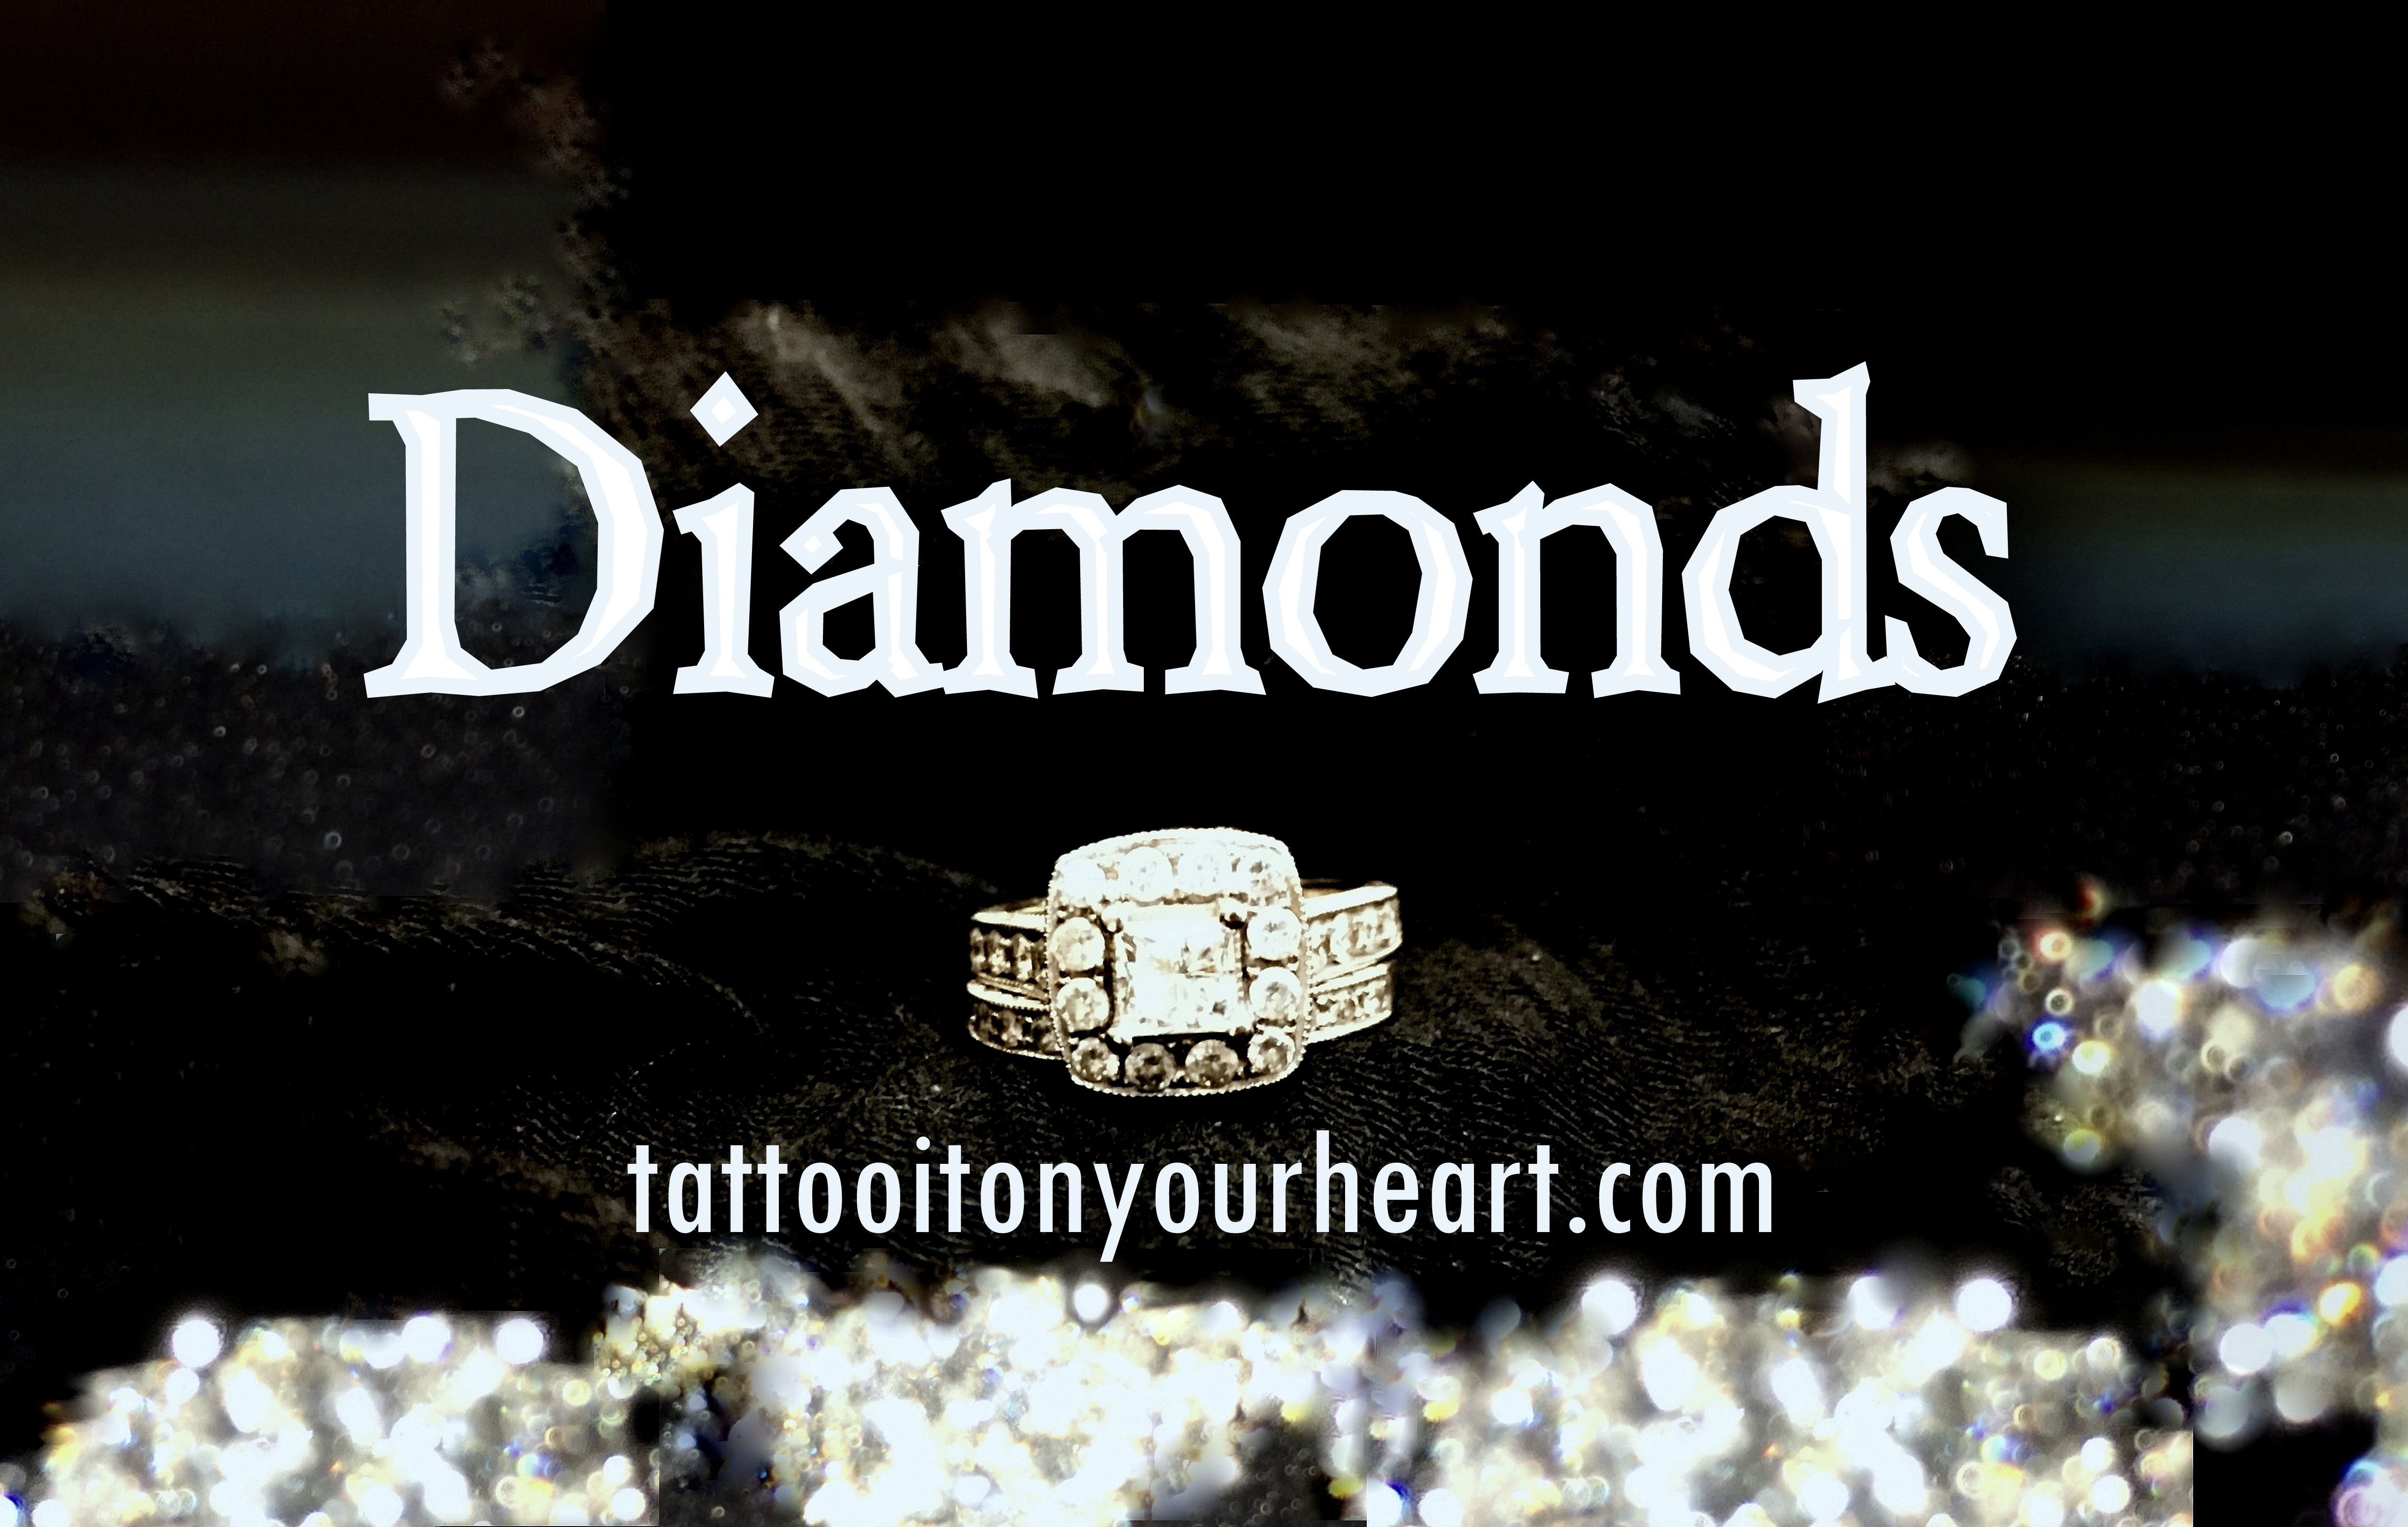 Rachael_M_Colby_Tattoo_It_On_your_Heart_Diamonds